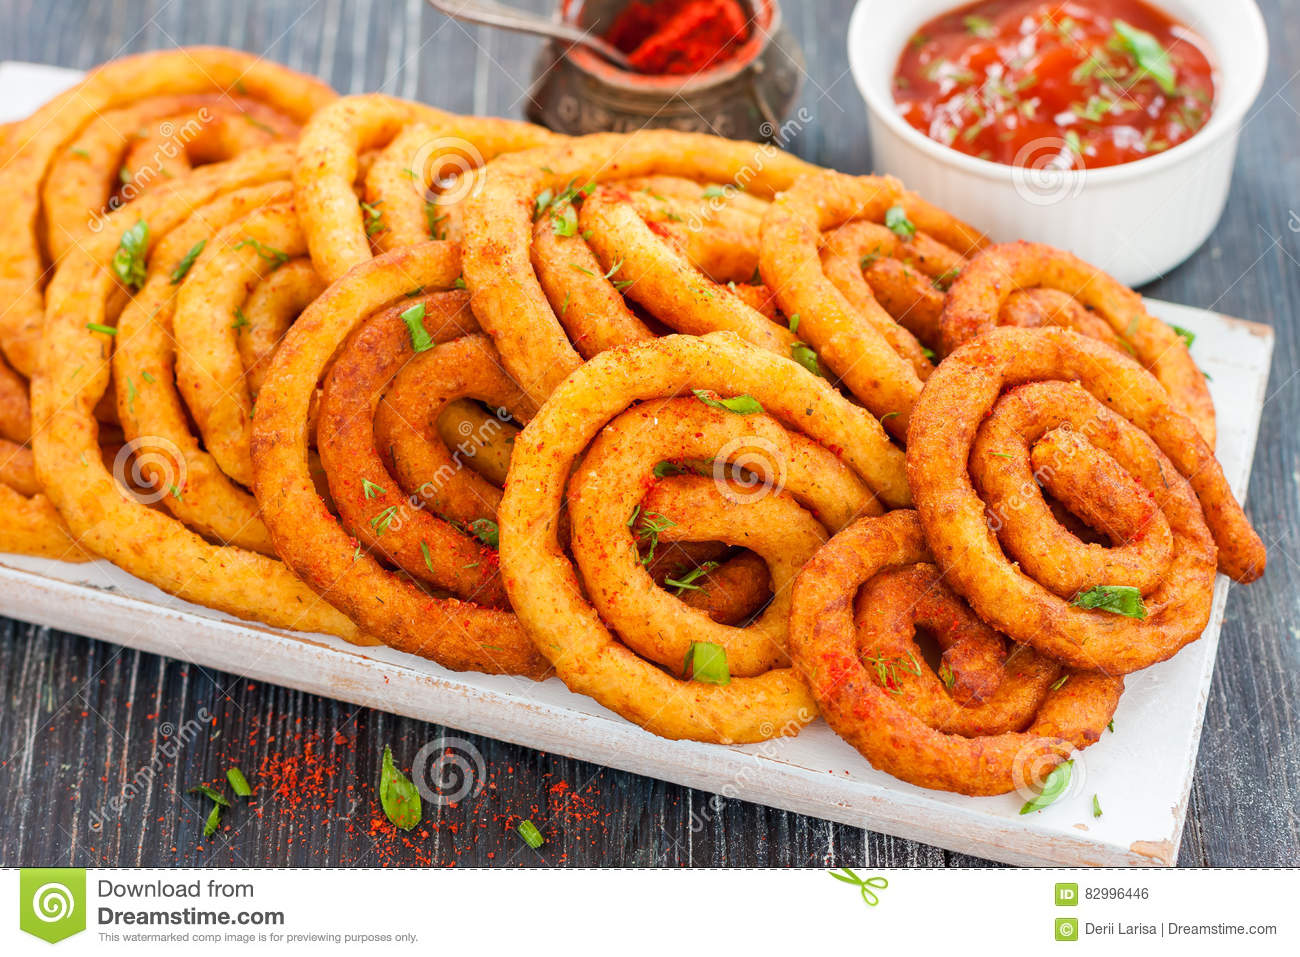 Spirals of the potato and cheese in oil.